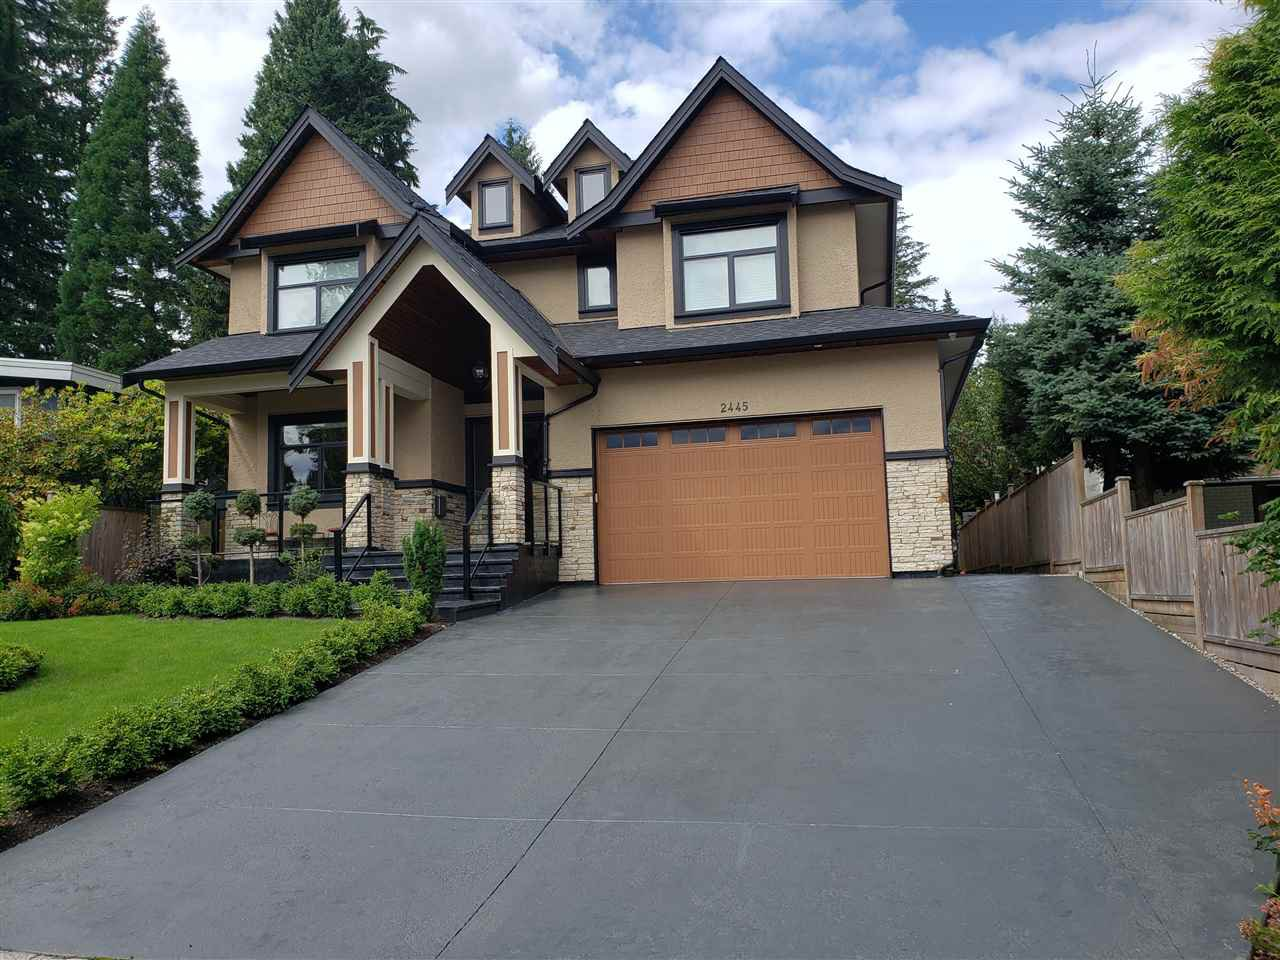 Main Photo: 2445 HAVERSLEY AVENUE in Coquitlam: Central Coquitlam House  : MLS®# R2459123